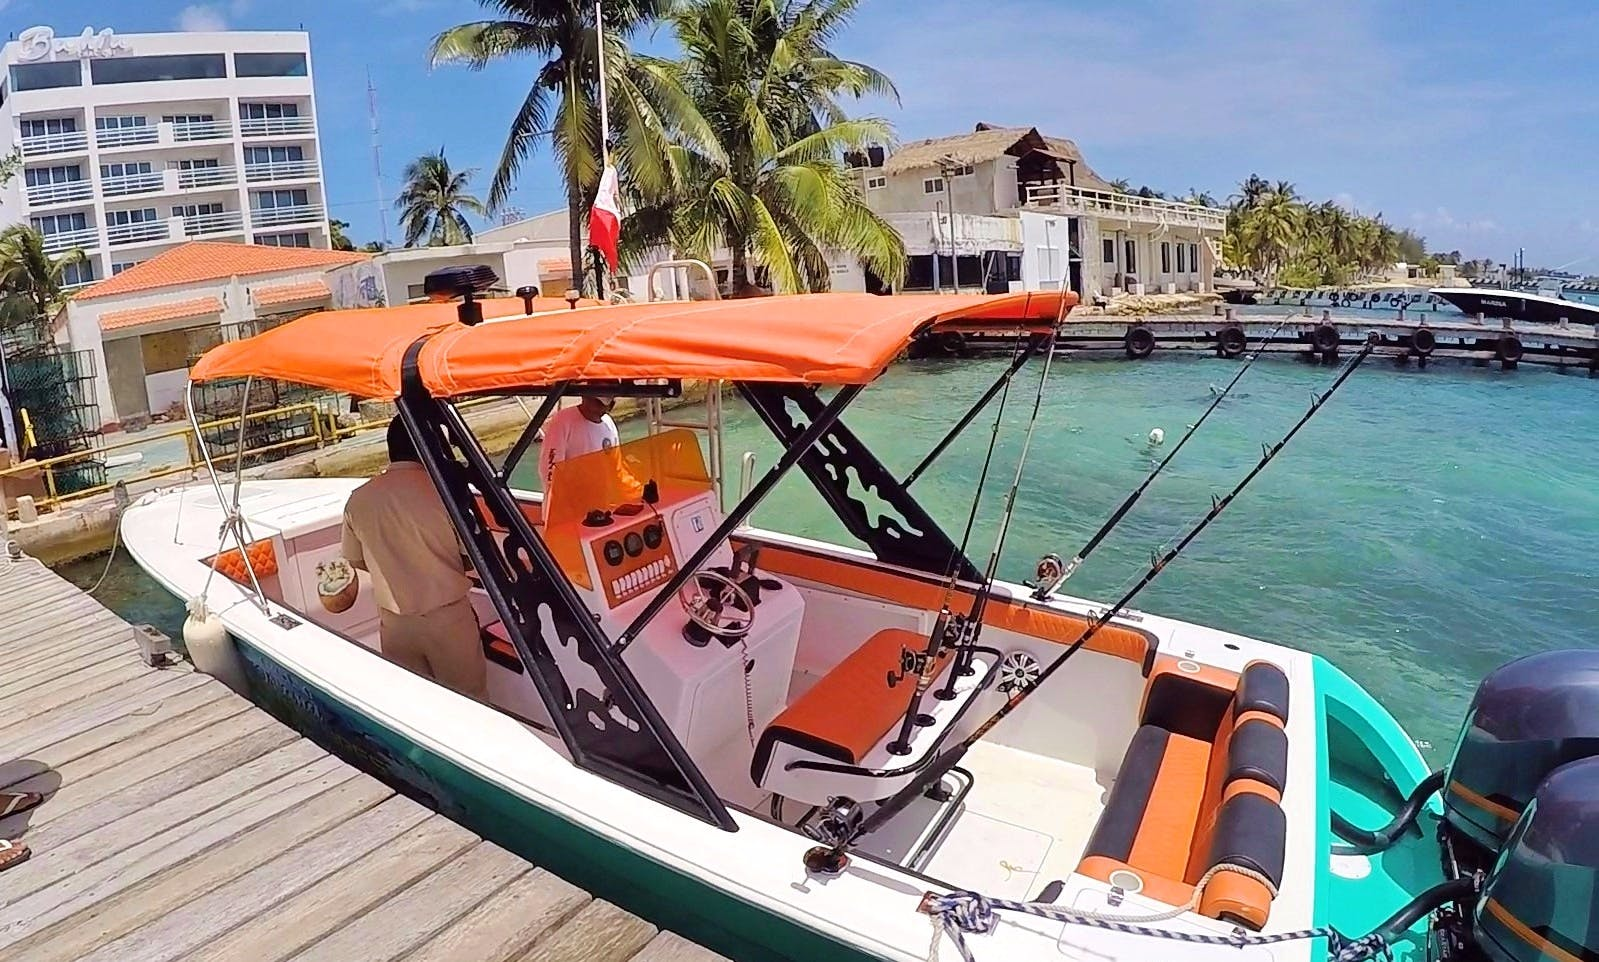 Boat Ride, Snorkeling and Fishing tríp from Cancun to Isla Mujeres!